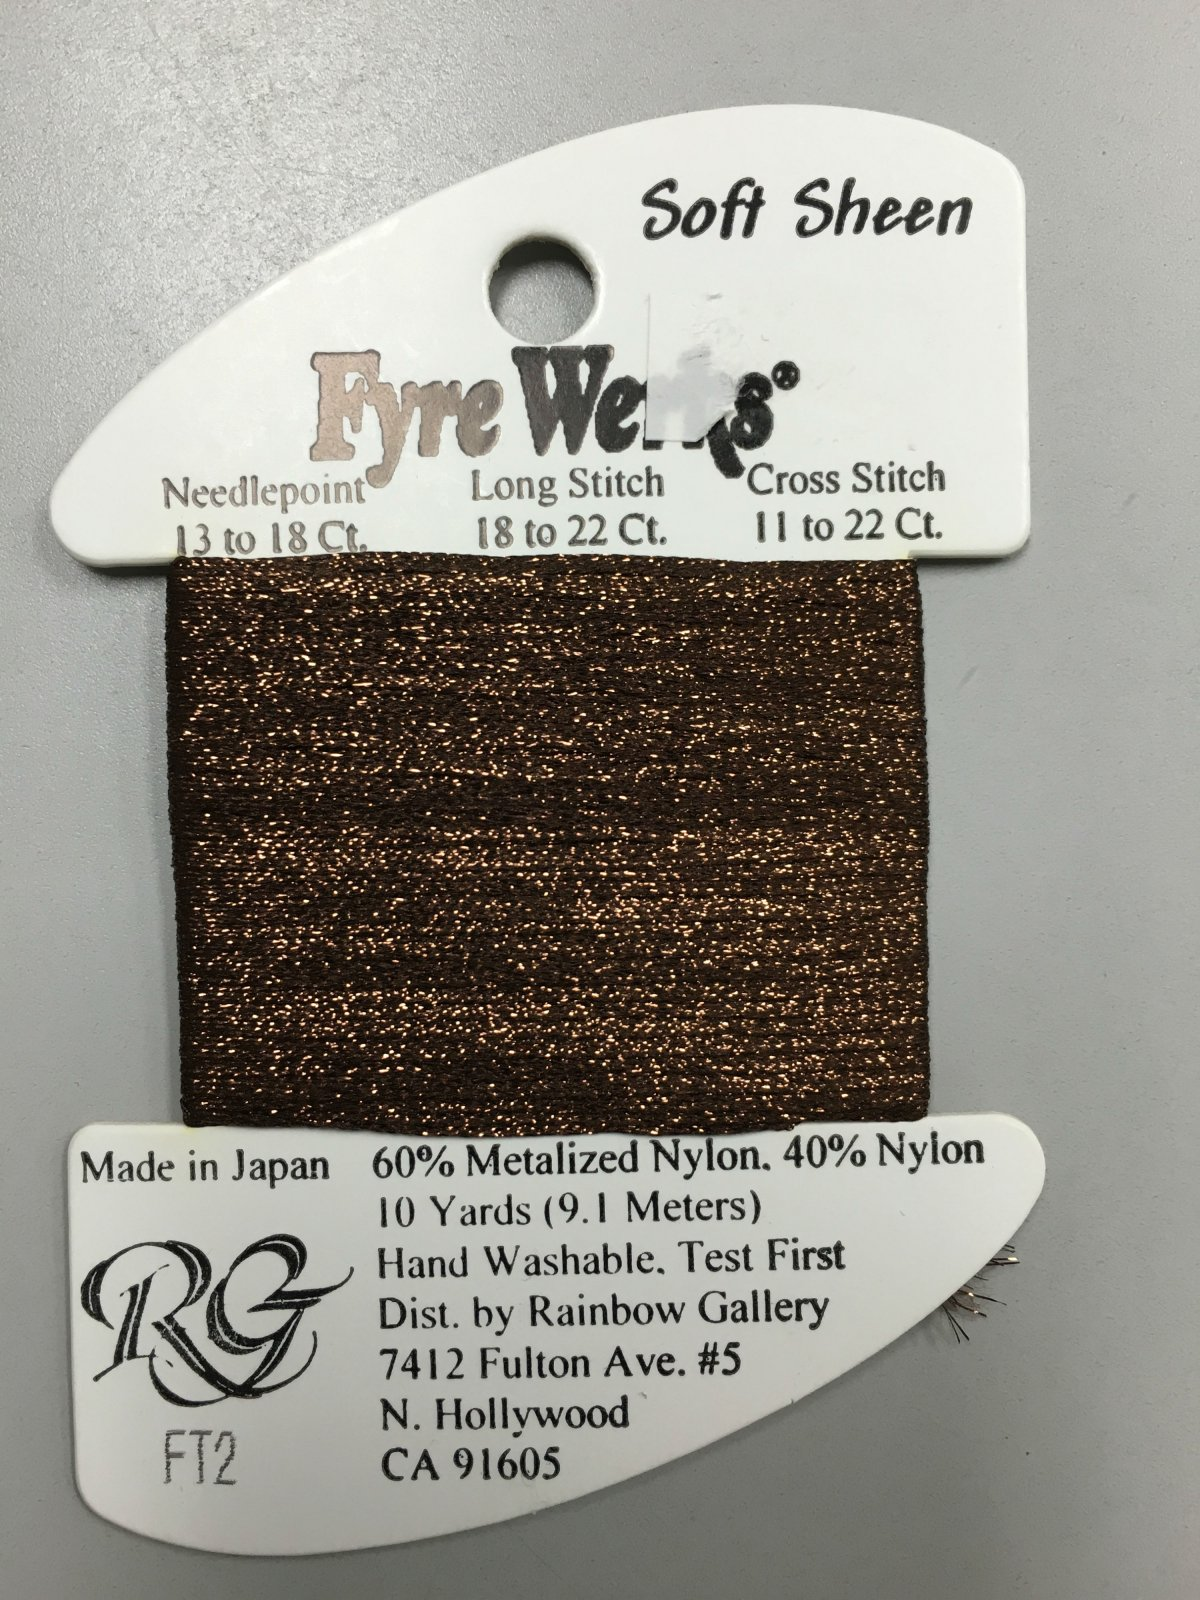 Fyre Werks Soft Sheen FT2